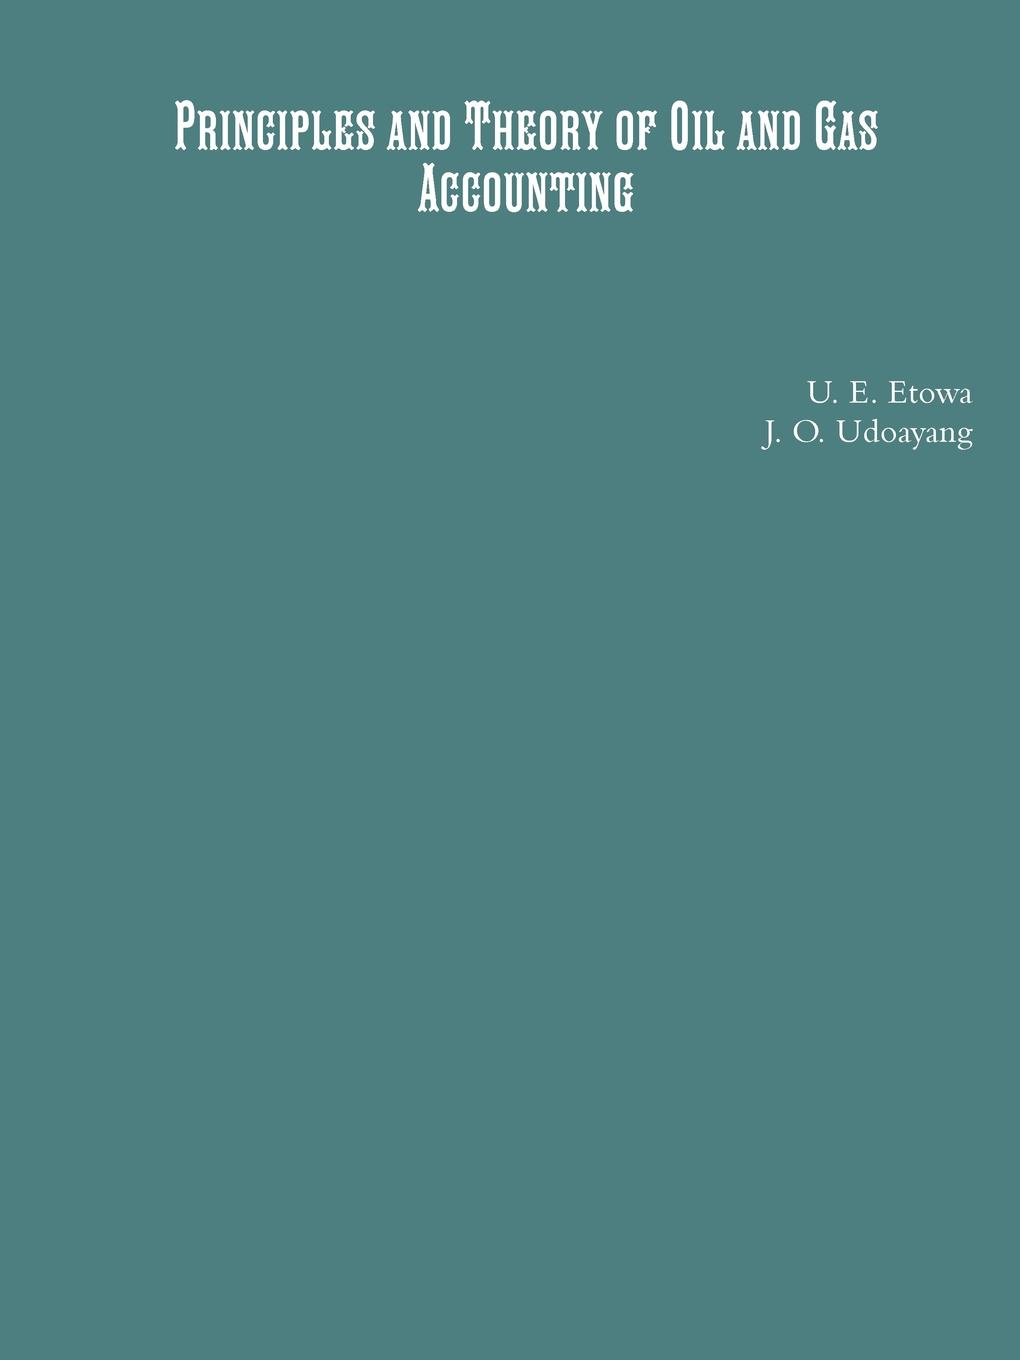 U. E. Etowa, J. O. Ph. D Udoayang Principles and Theory of Oil and Gas Accounting r b kester accounting theory and practice volume iii